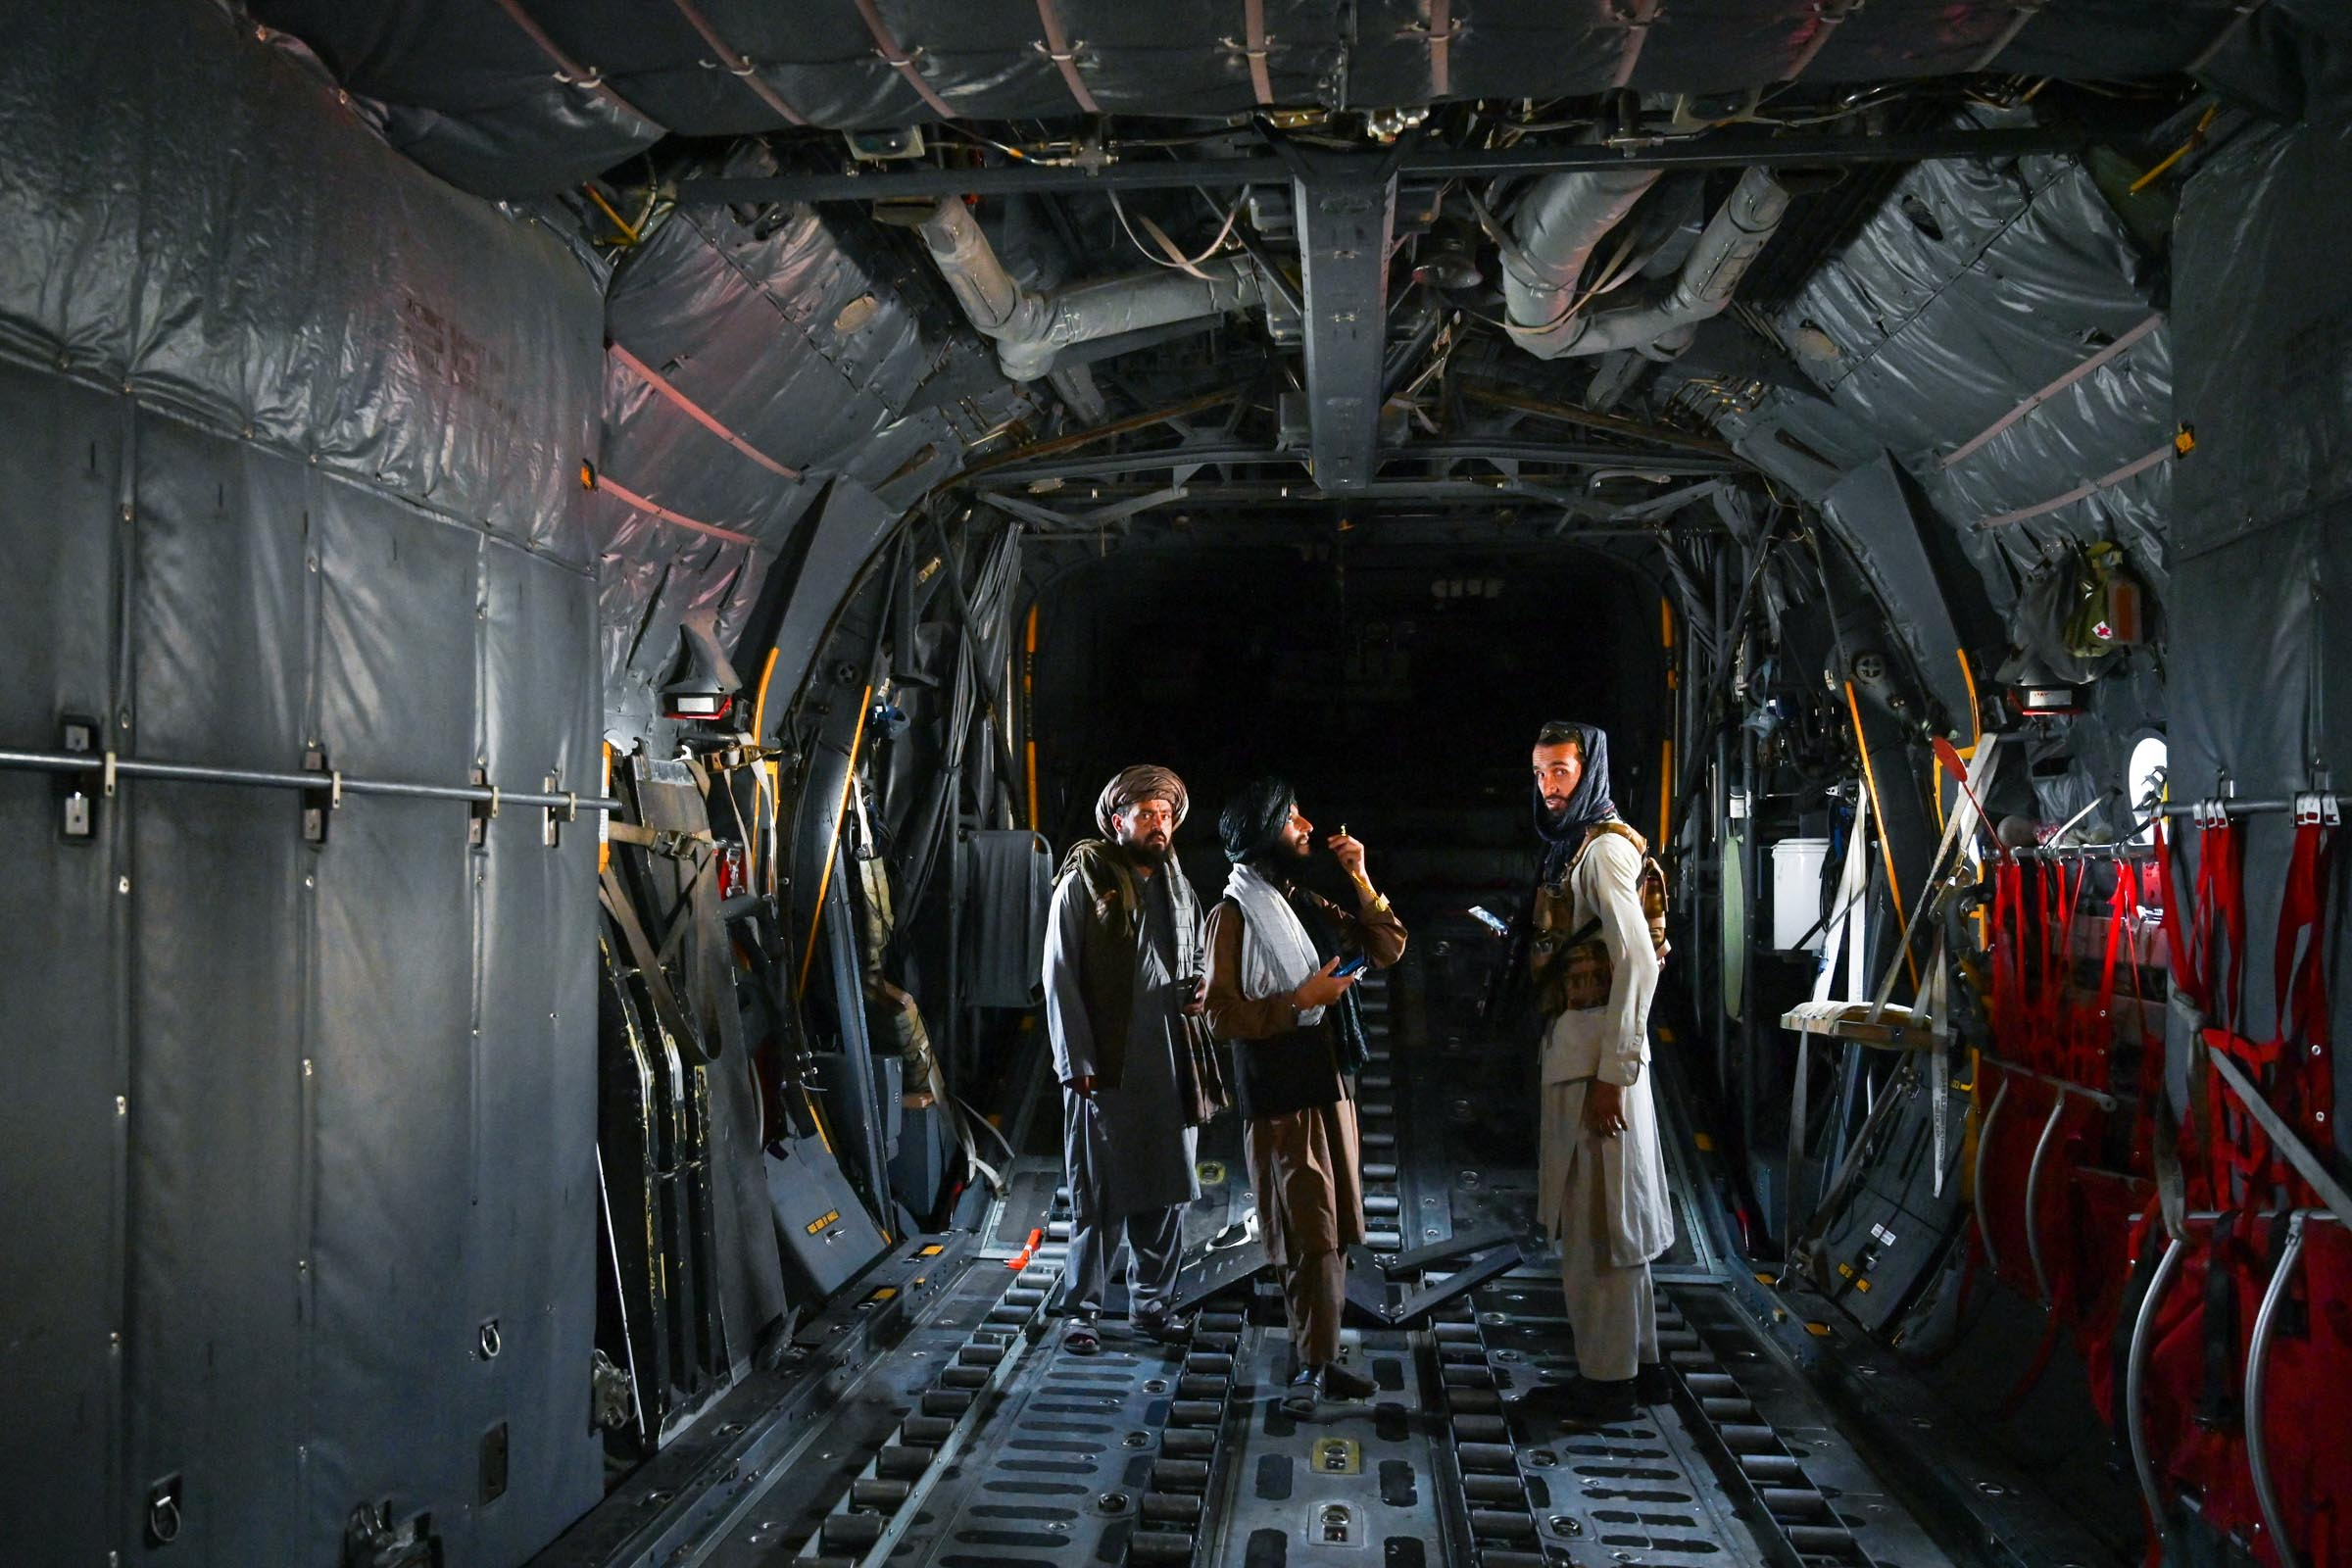 Members of the Taliban stand inside an Afghan Air Force aircraft at the airport.